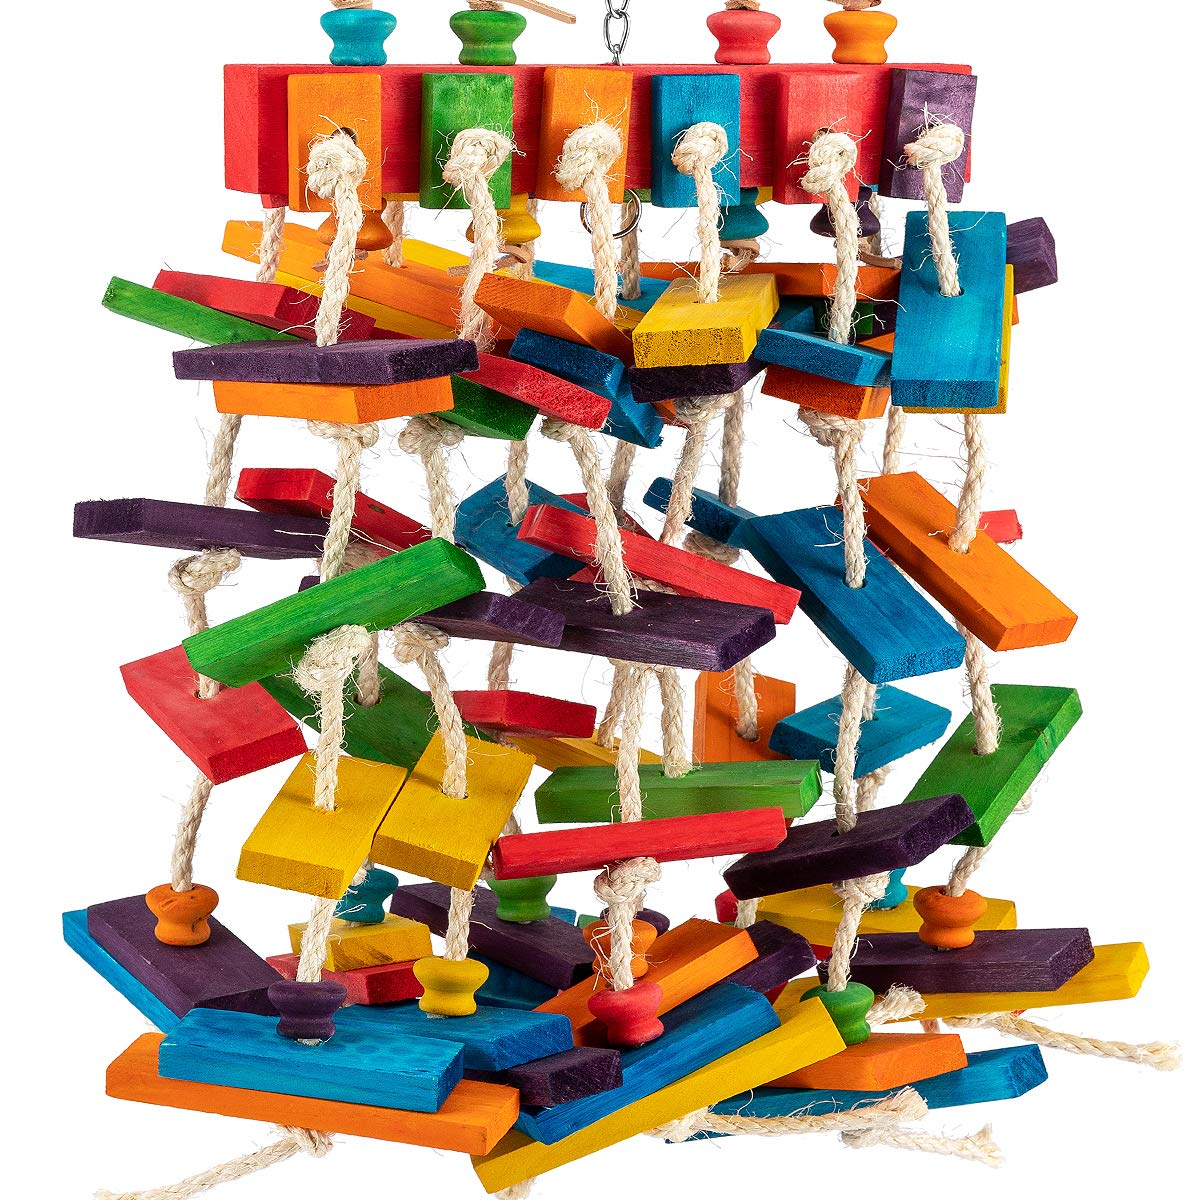 MEWTOGO Large Bird Parrot Chewing Toys- Multicolored Natural Wooden Knots Blocks Waterfall Bird Tearing Entertaining Toys Suggested for Cockatoos, African Grey and a Variety of Amazon Parrots by MEWTOGO